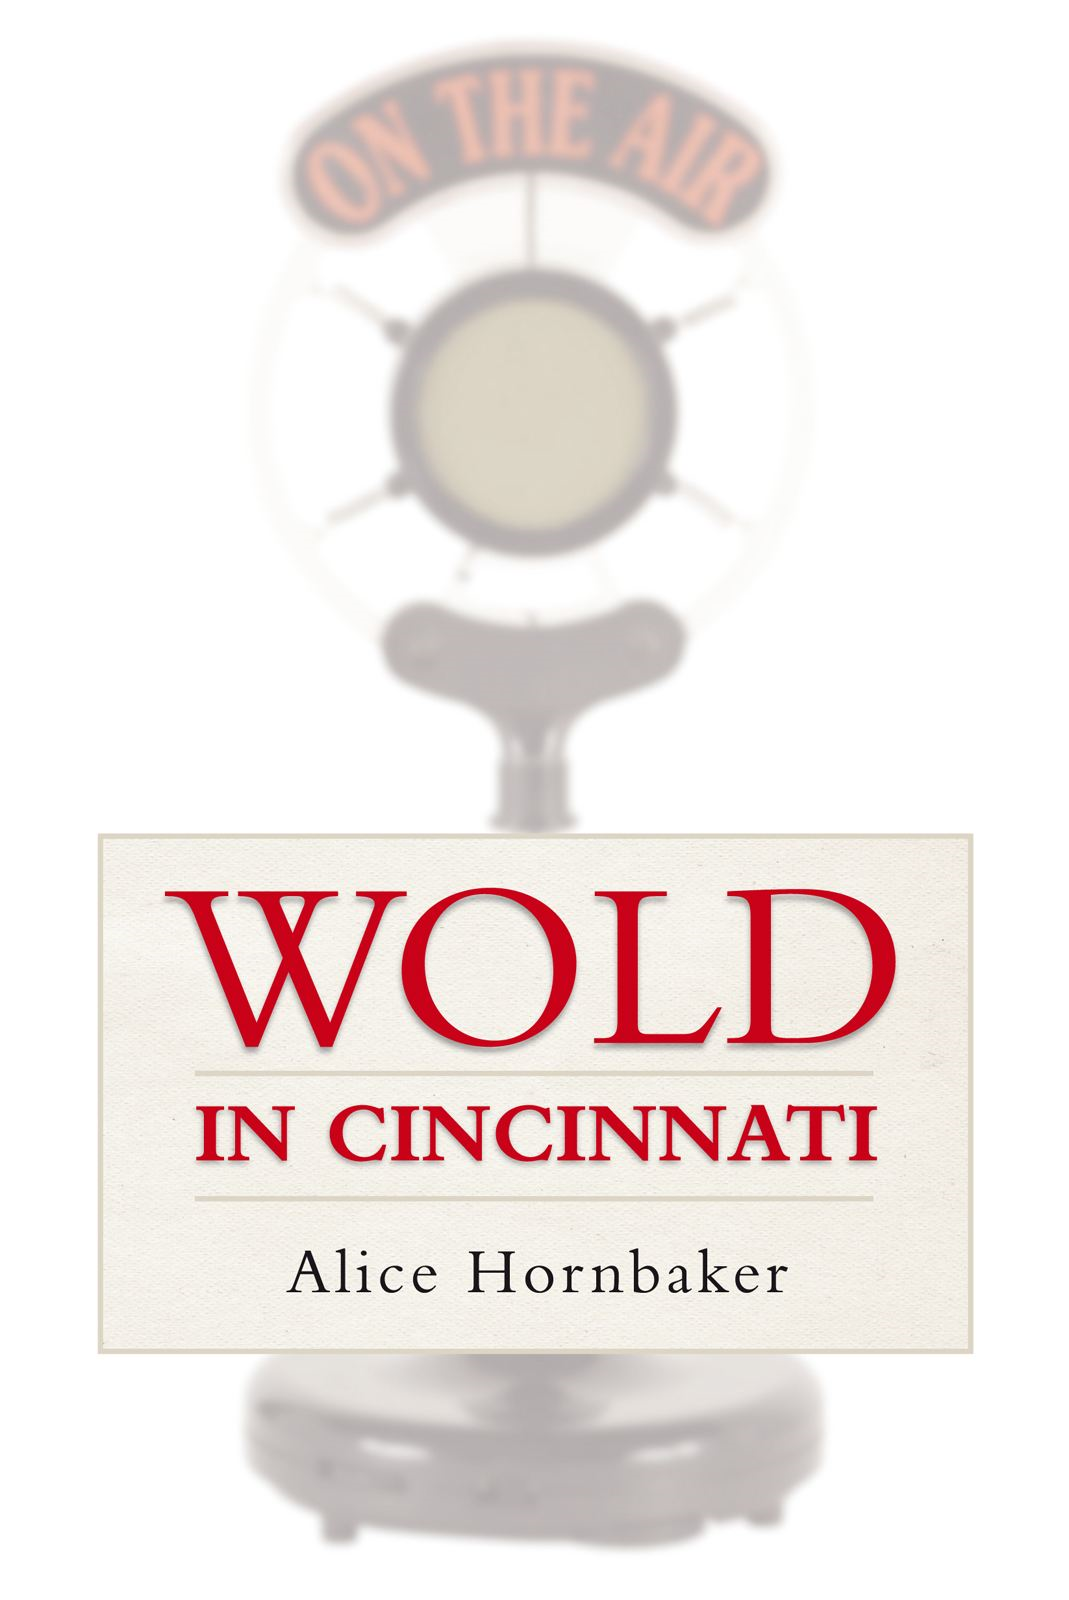 WOLD in Cincinnati By: Alice Hornbaker